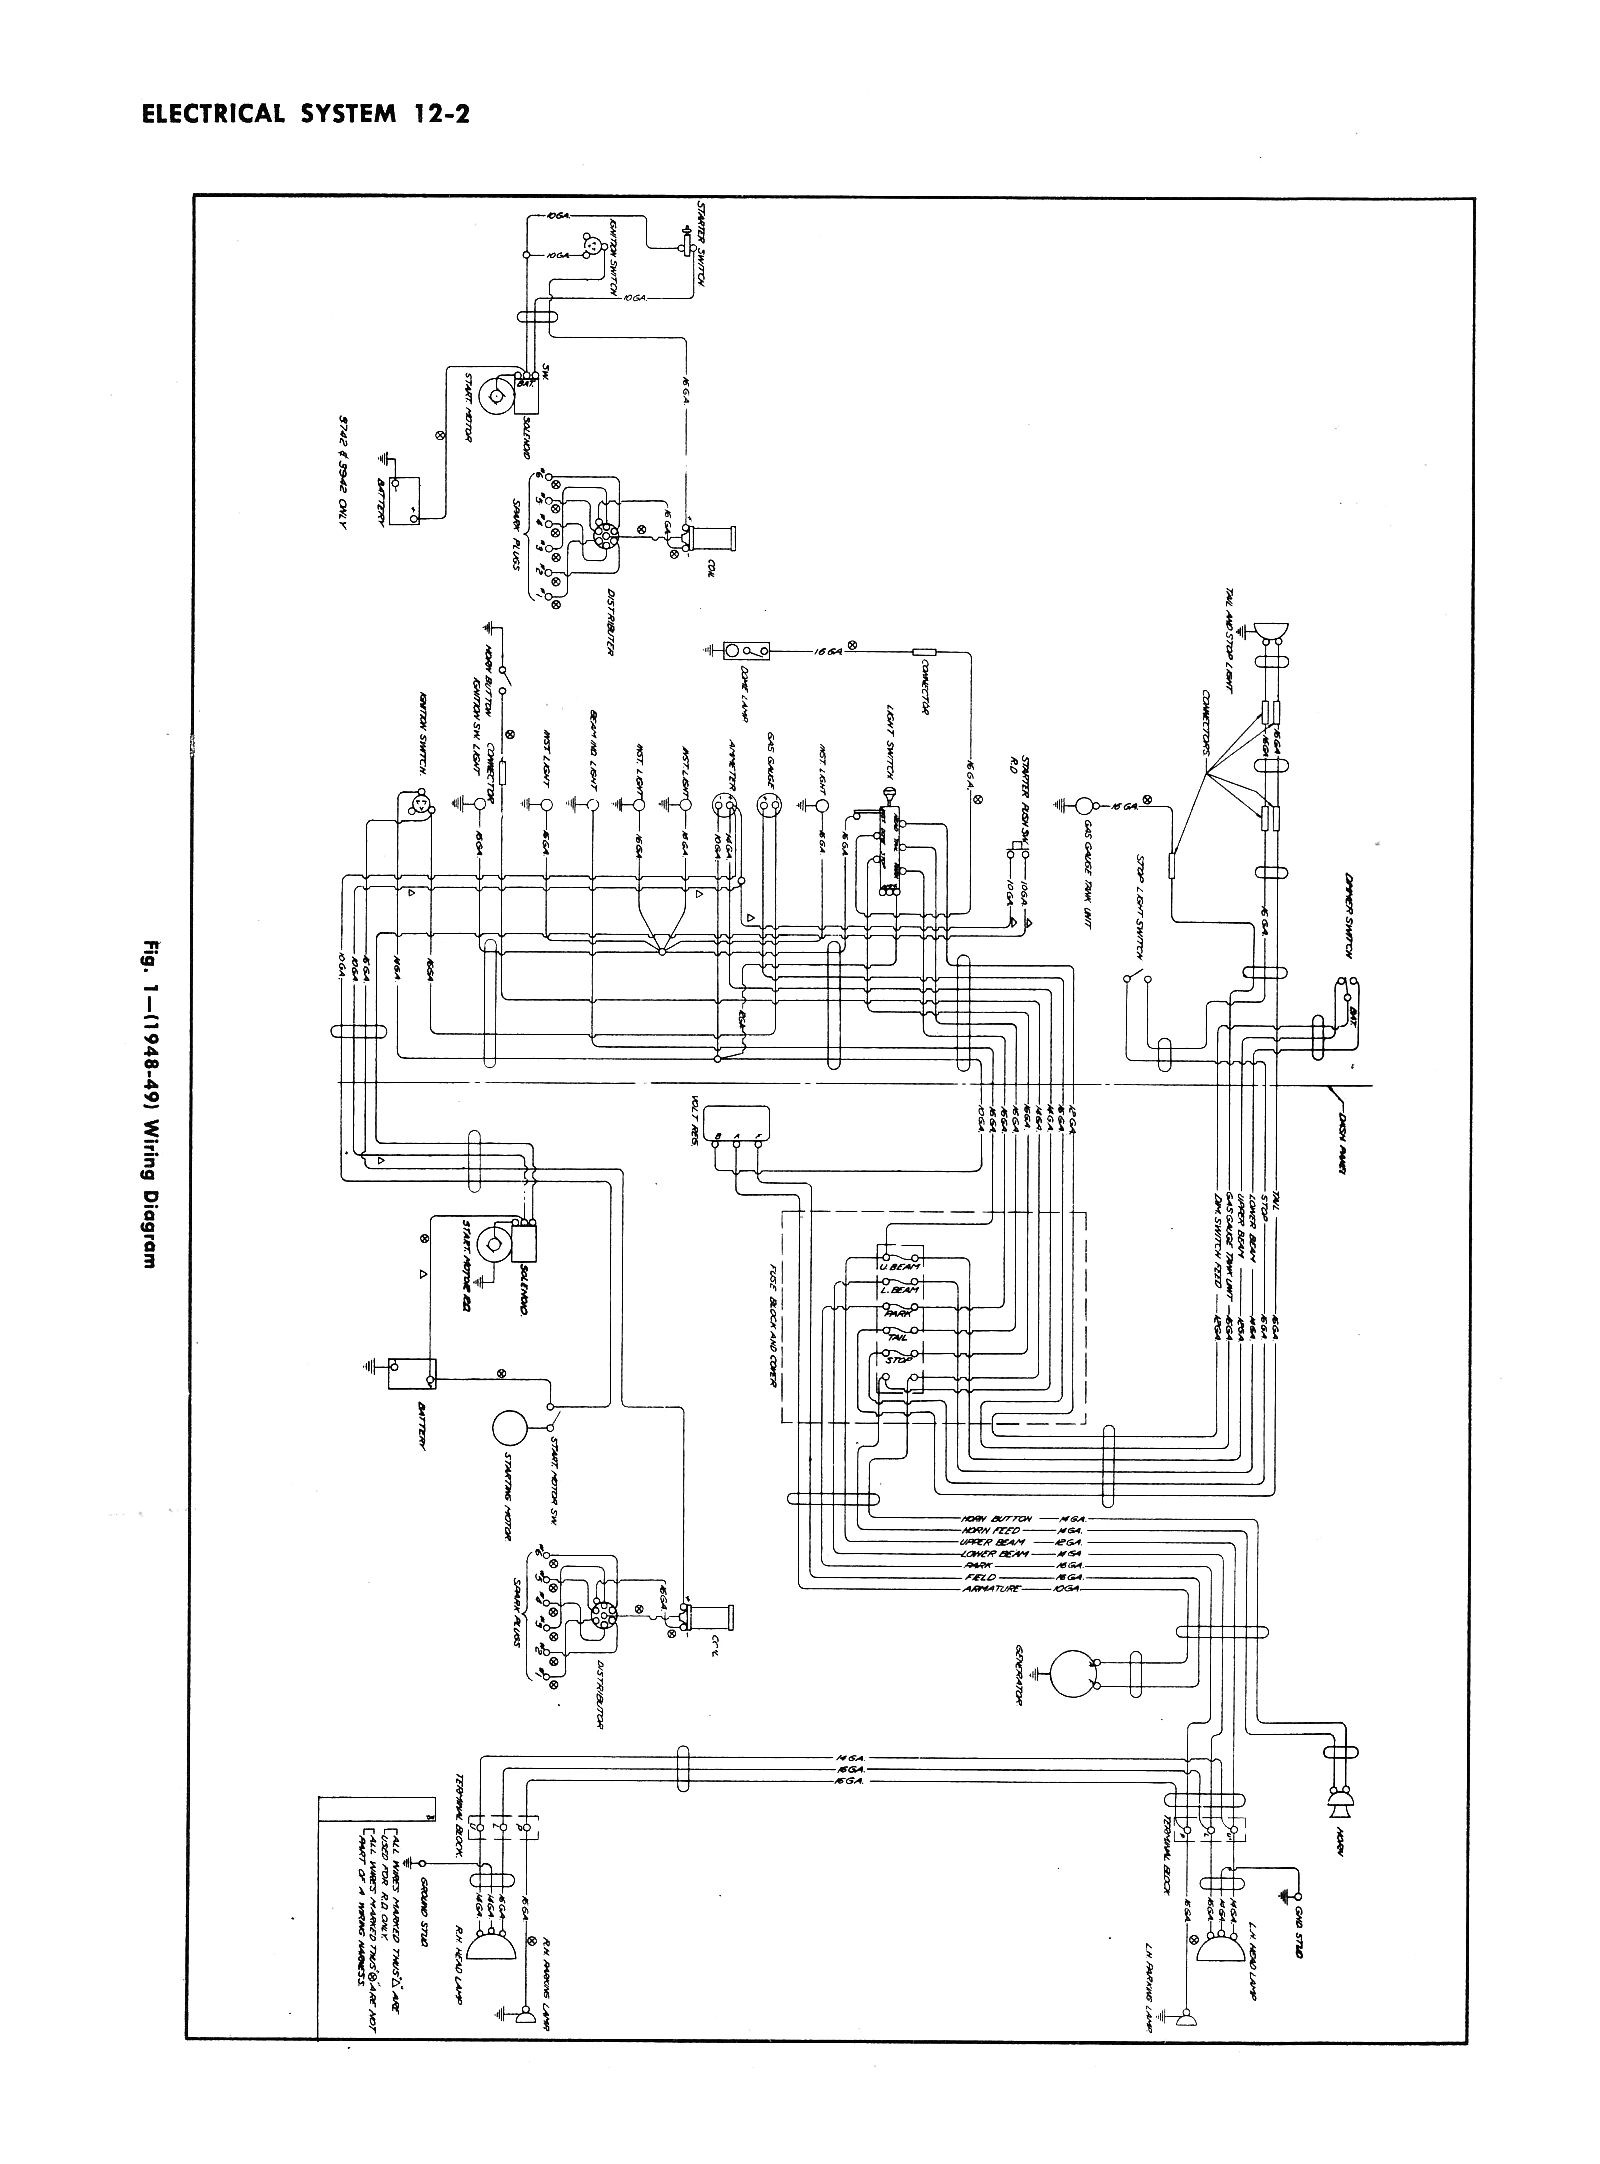 1948 f1 wiring harness   22 wiring diagram images